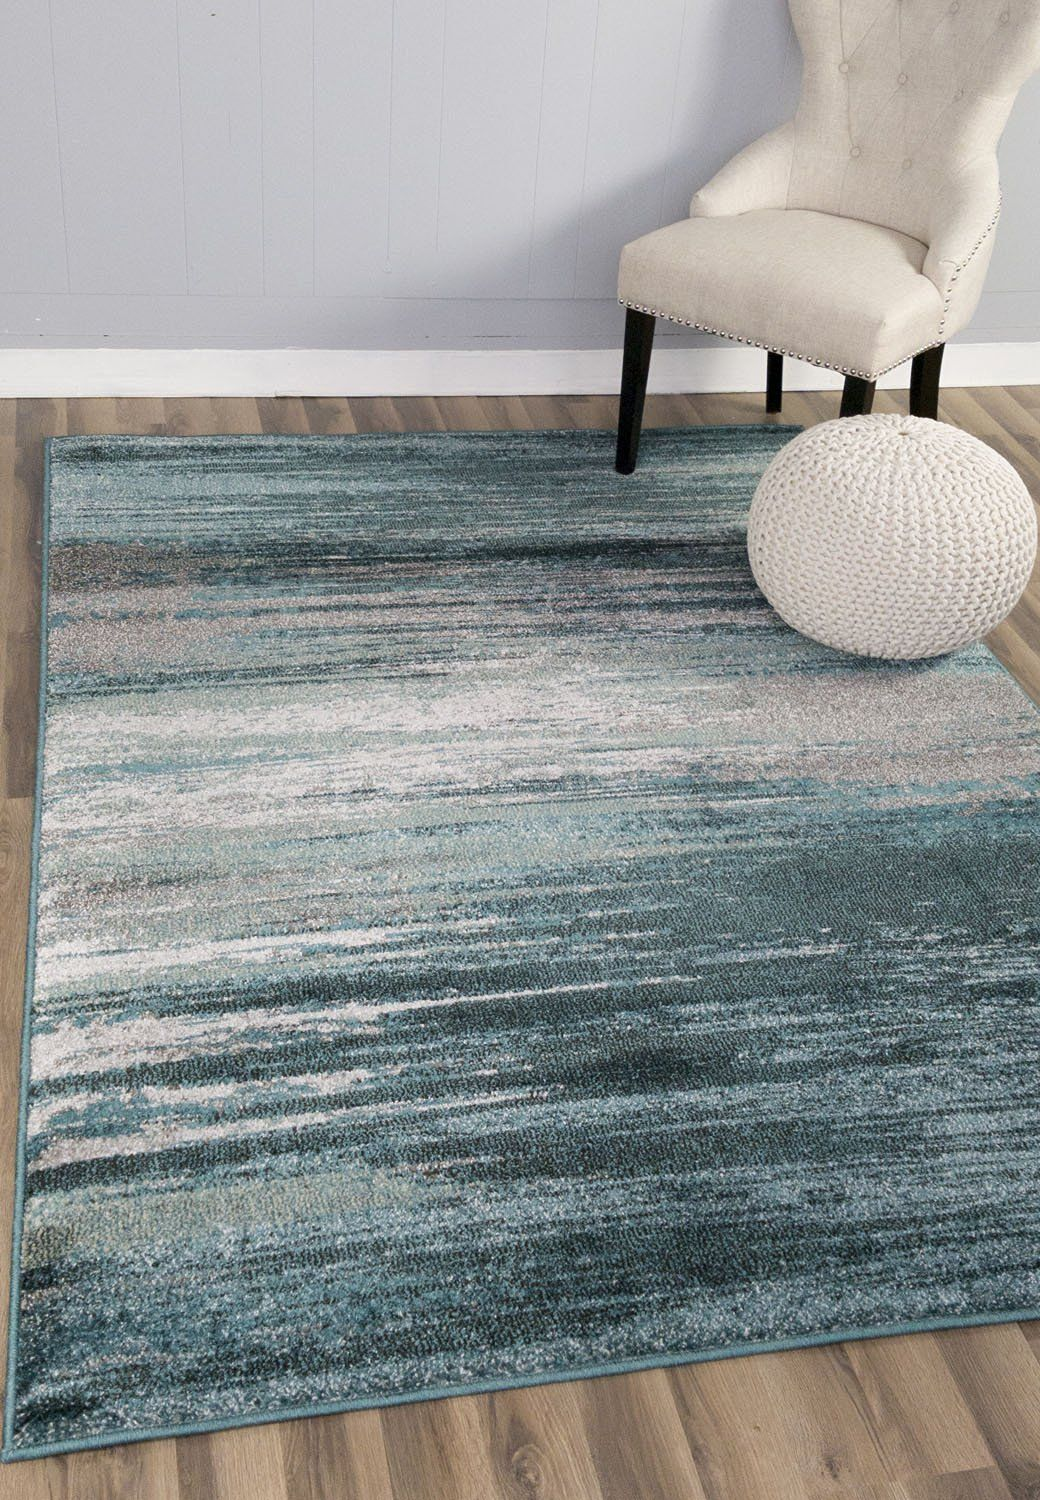 Amazon Com Teal Gray Rug Modern Contemporary Design 7 10 X 10